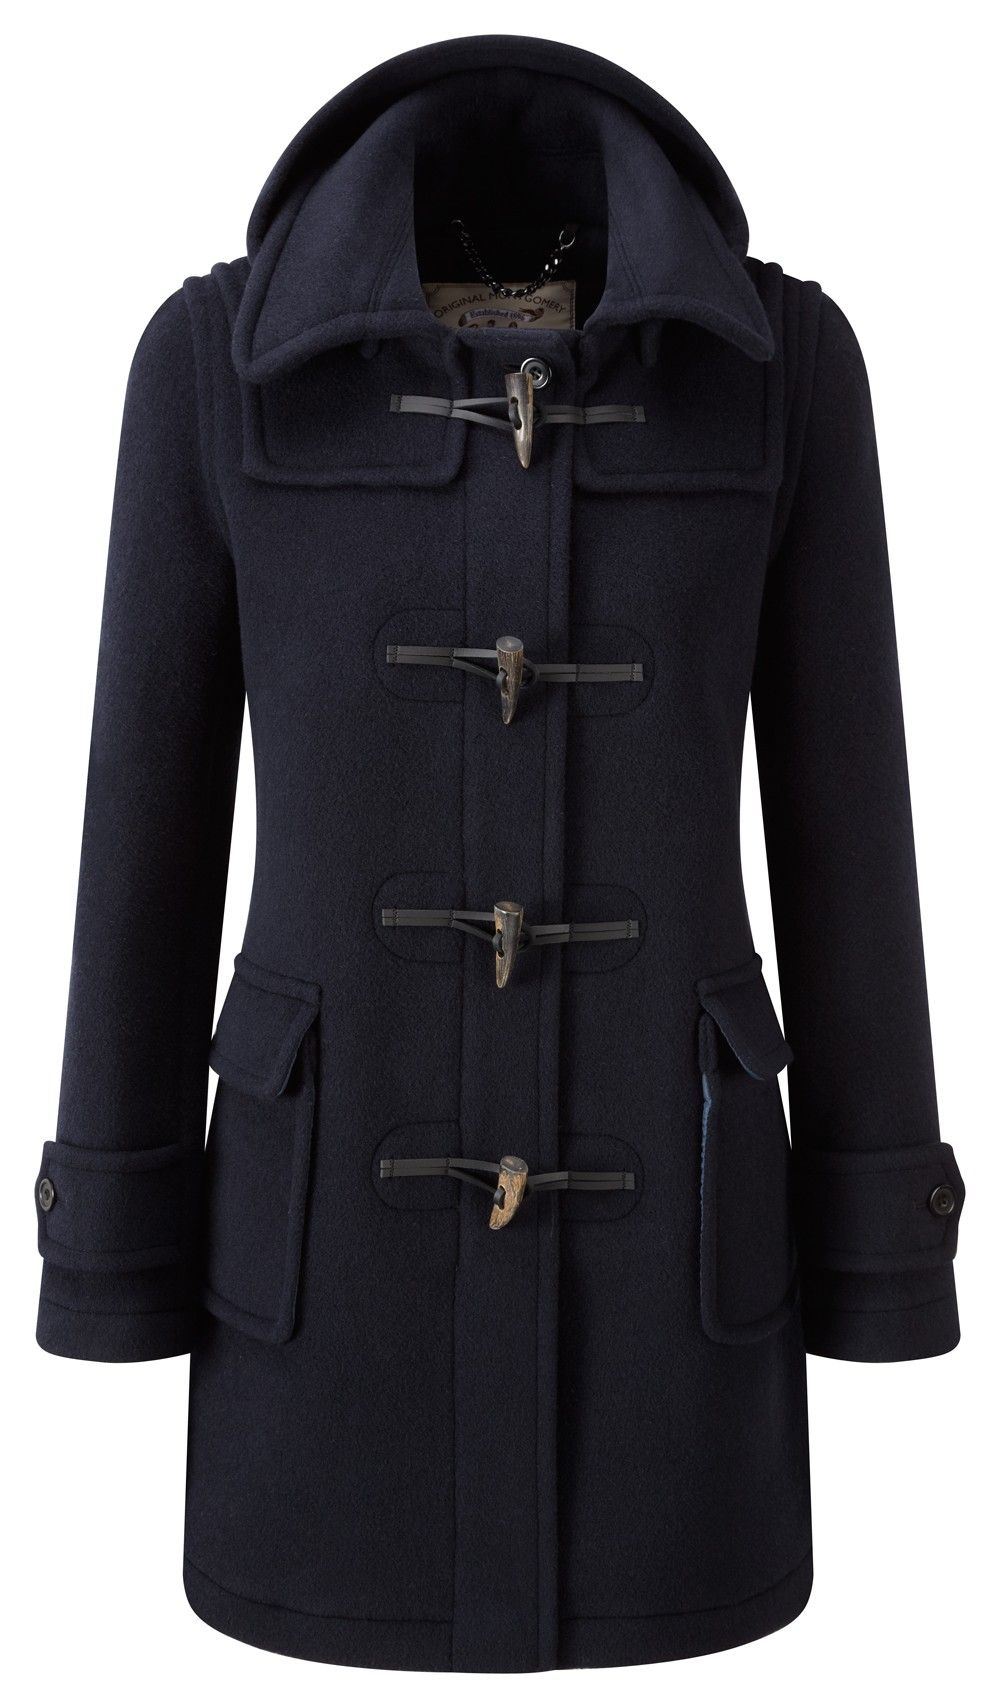 Womens London Duffle Coat -- Navy | Vague attempts at personal ...